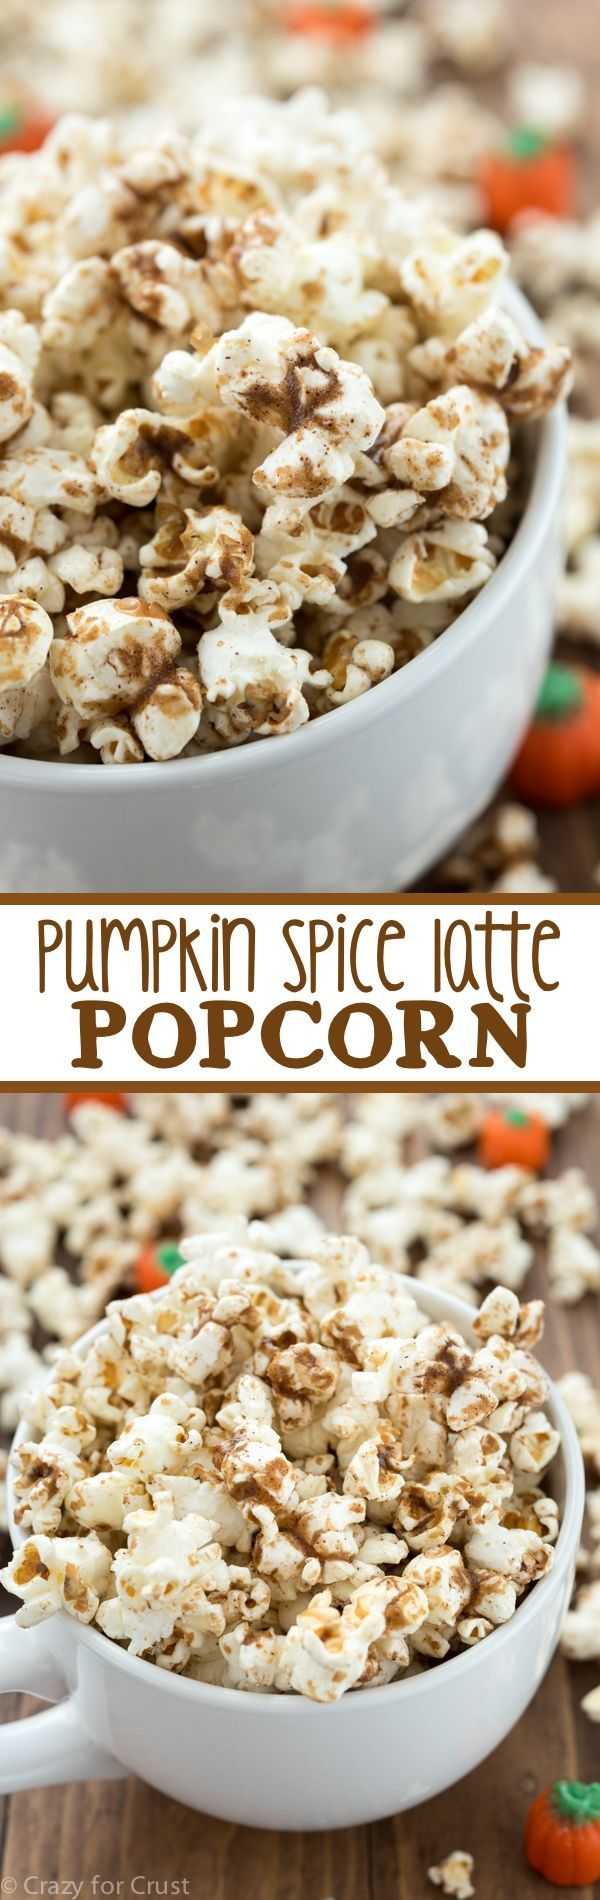 Pumpkin Spice Latte Popcorn - an easy and fast recipe that turns the pumpkin…